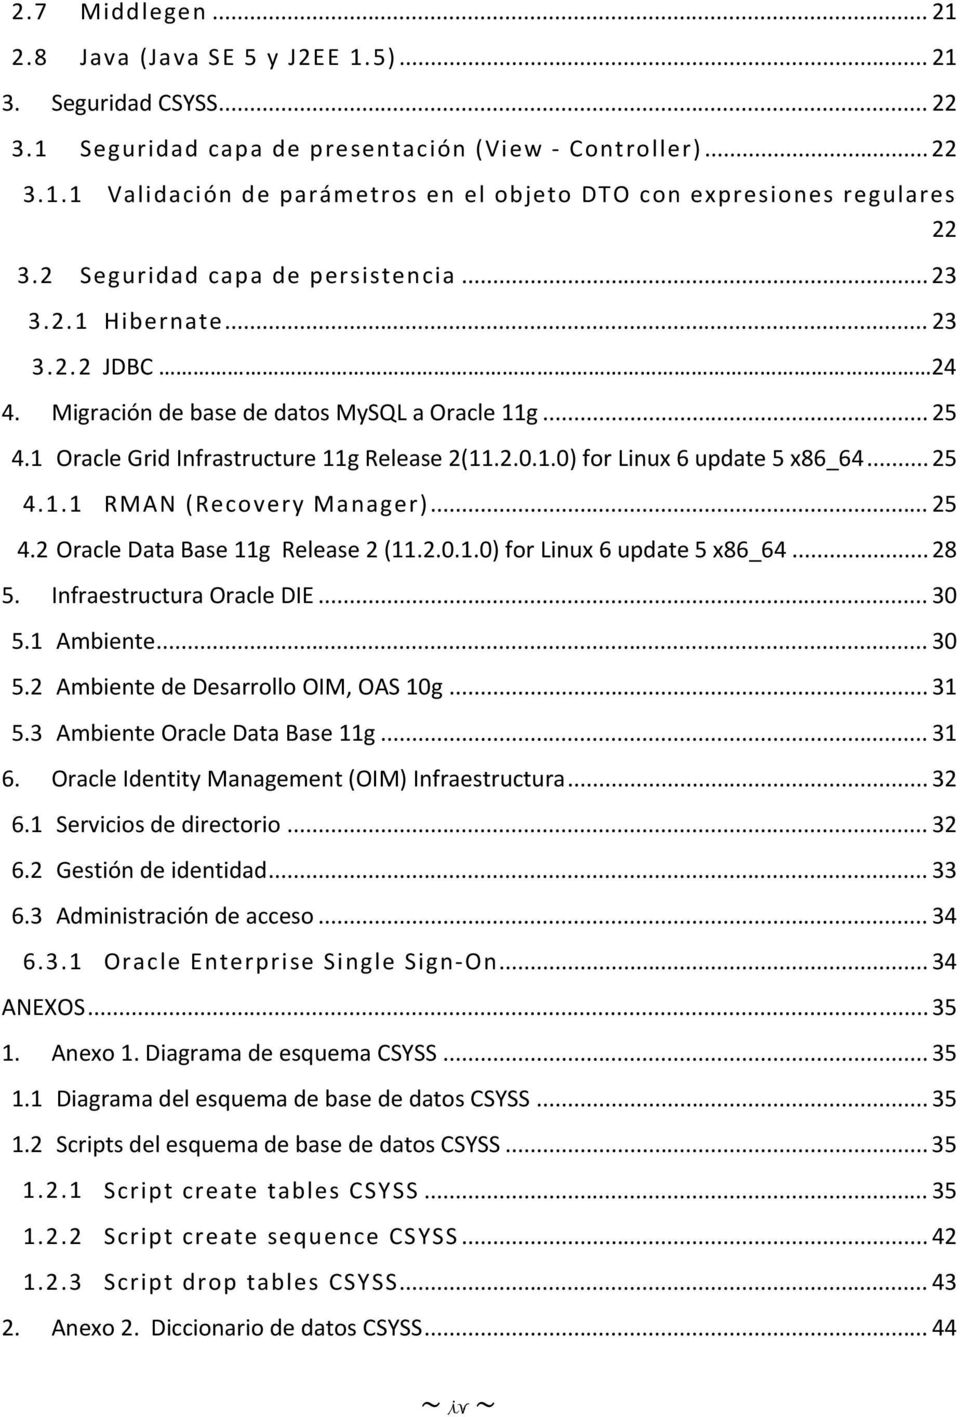 .. 25 4.1.1 RMAN (Recovery Manager)... 25 4.2 Oracle Data Base 11g Release 2 (11.2.0.1.0) for Linux 6 update 5 x86_64... 28 5. Infraestructura Oracle DIE... 30 5.1 Ambiente... 30 5.2 Ambiente de Desarrollo OIM, OAS 10g.